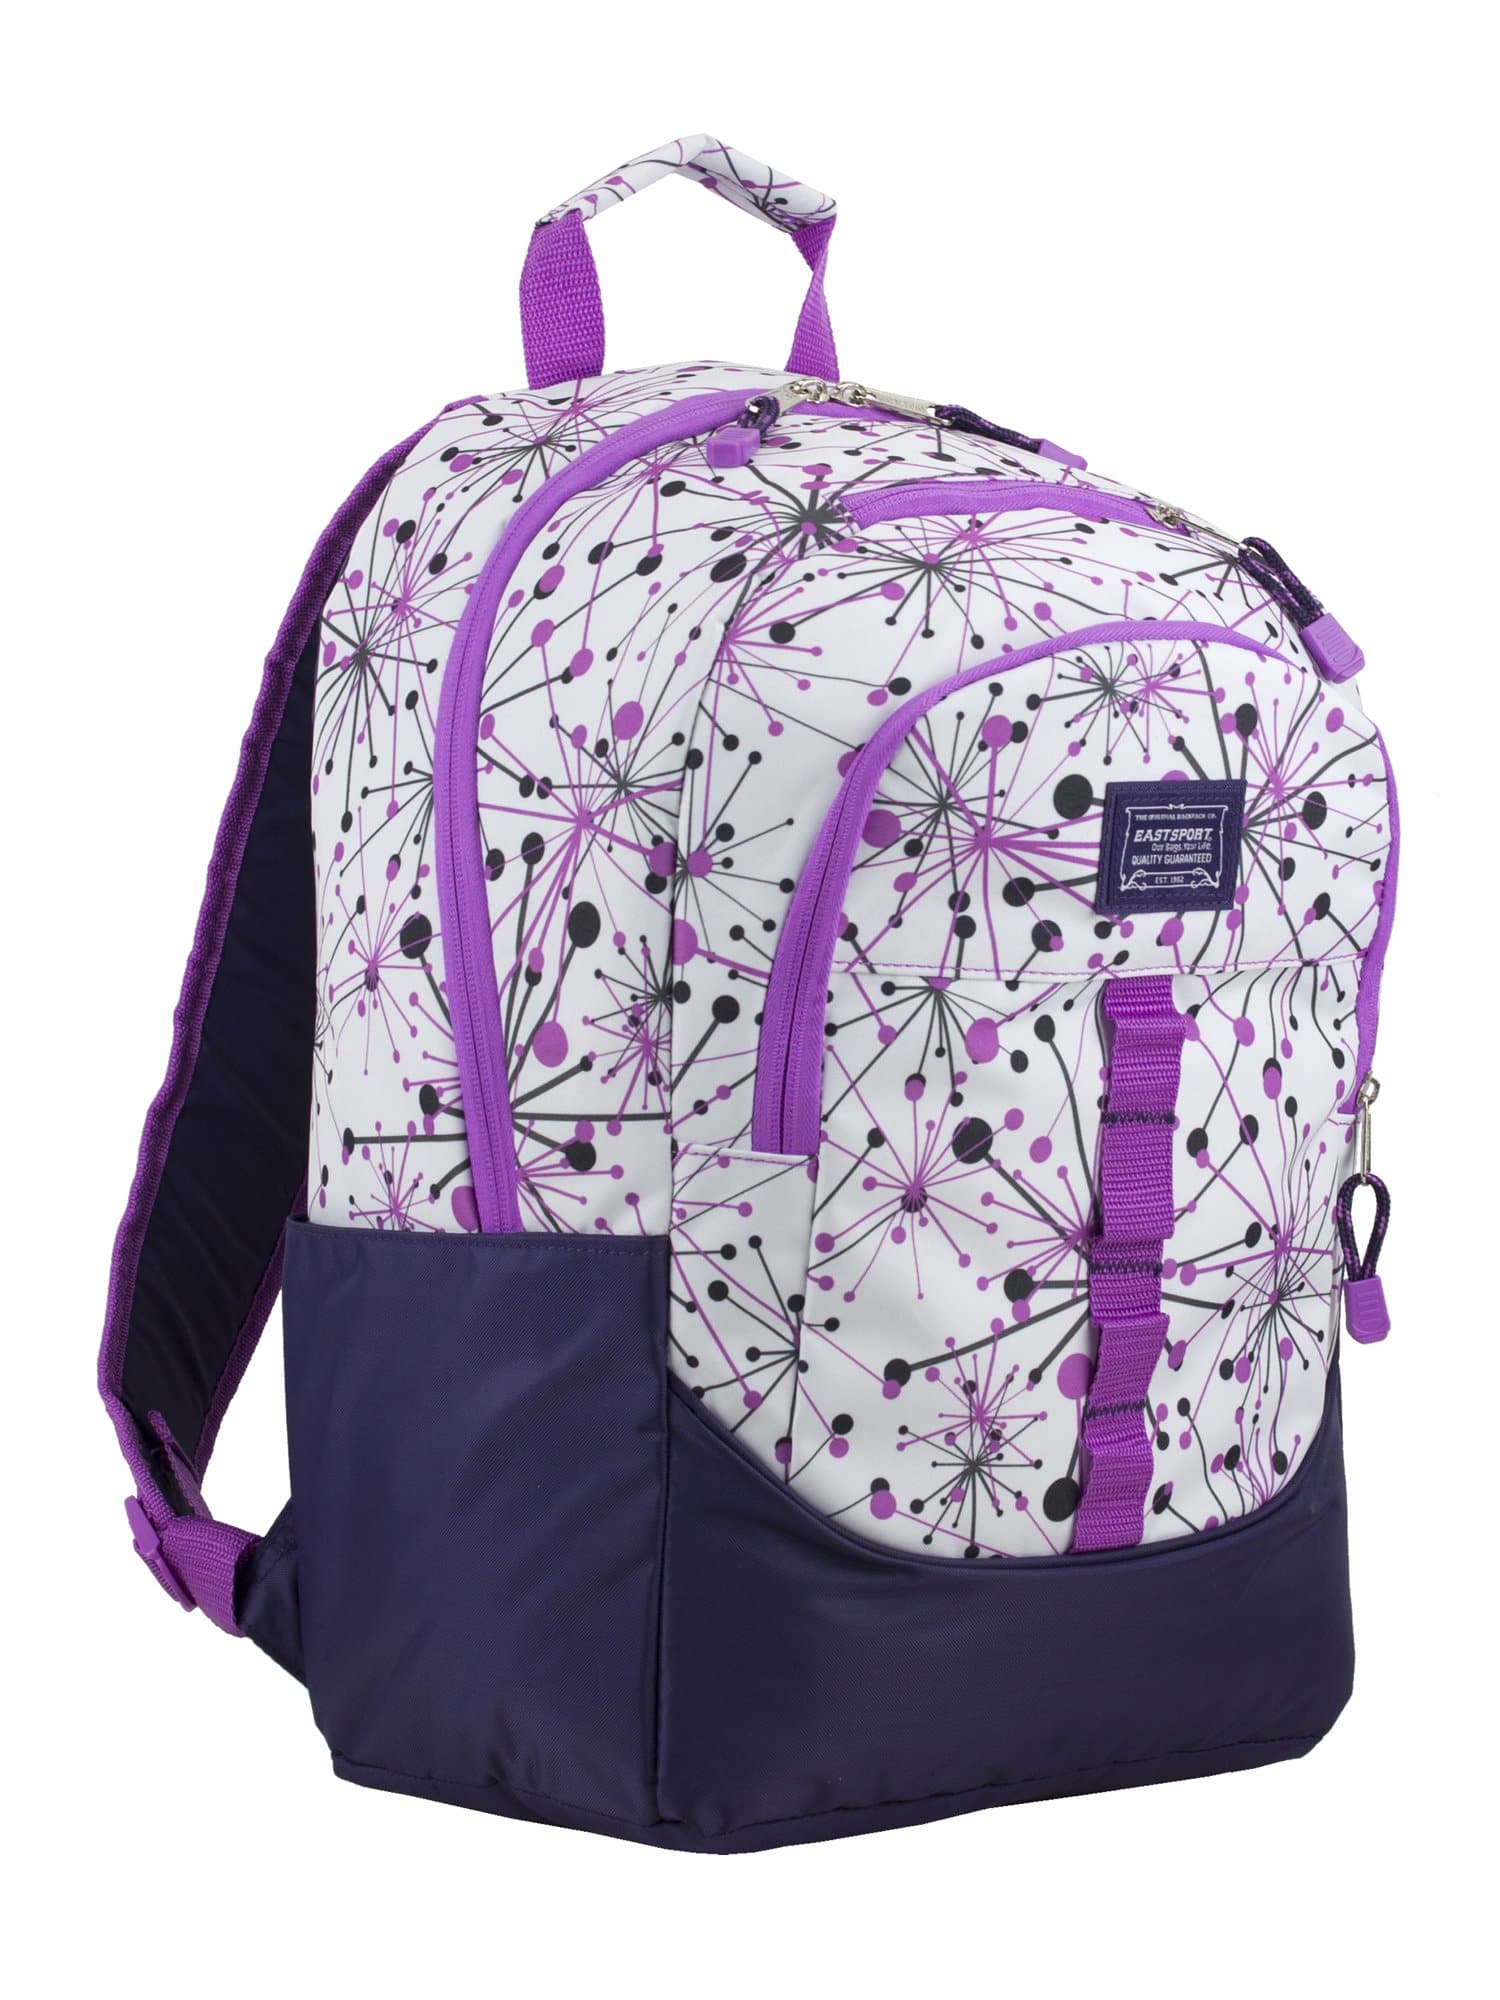 Multi-Purpose School Backpack - FLJ CORPORATIONS